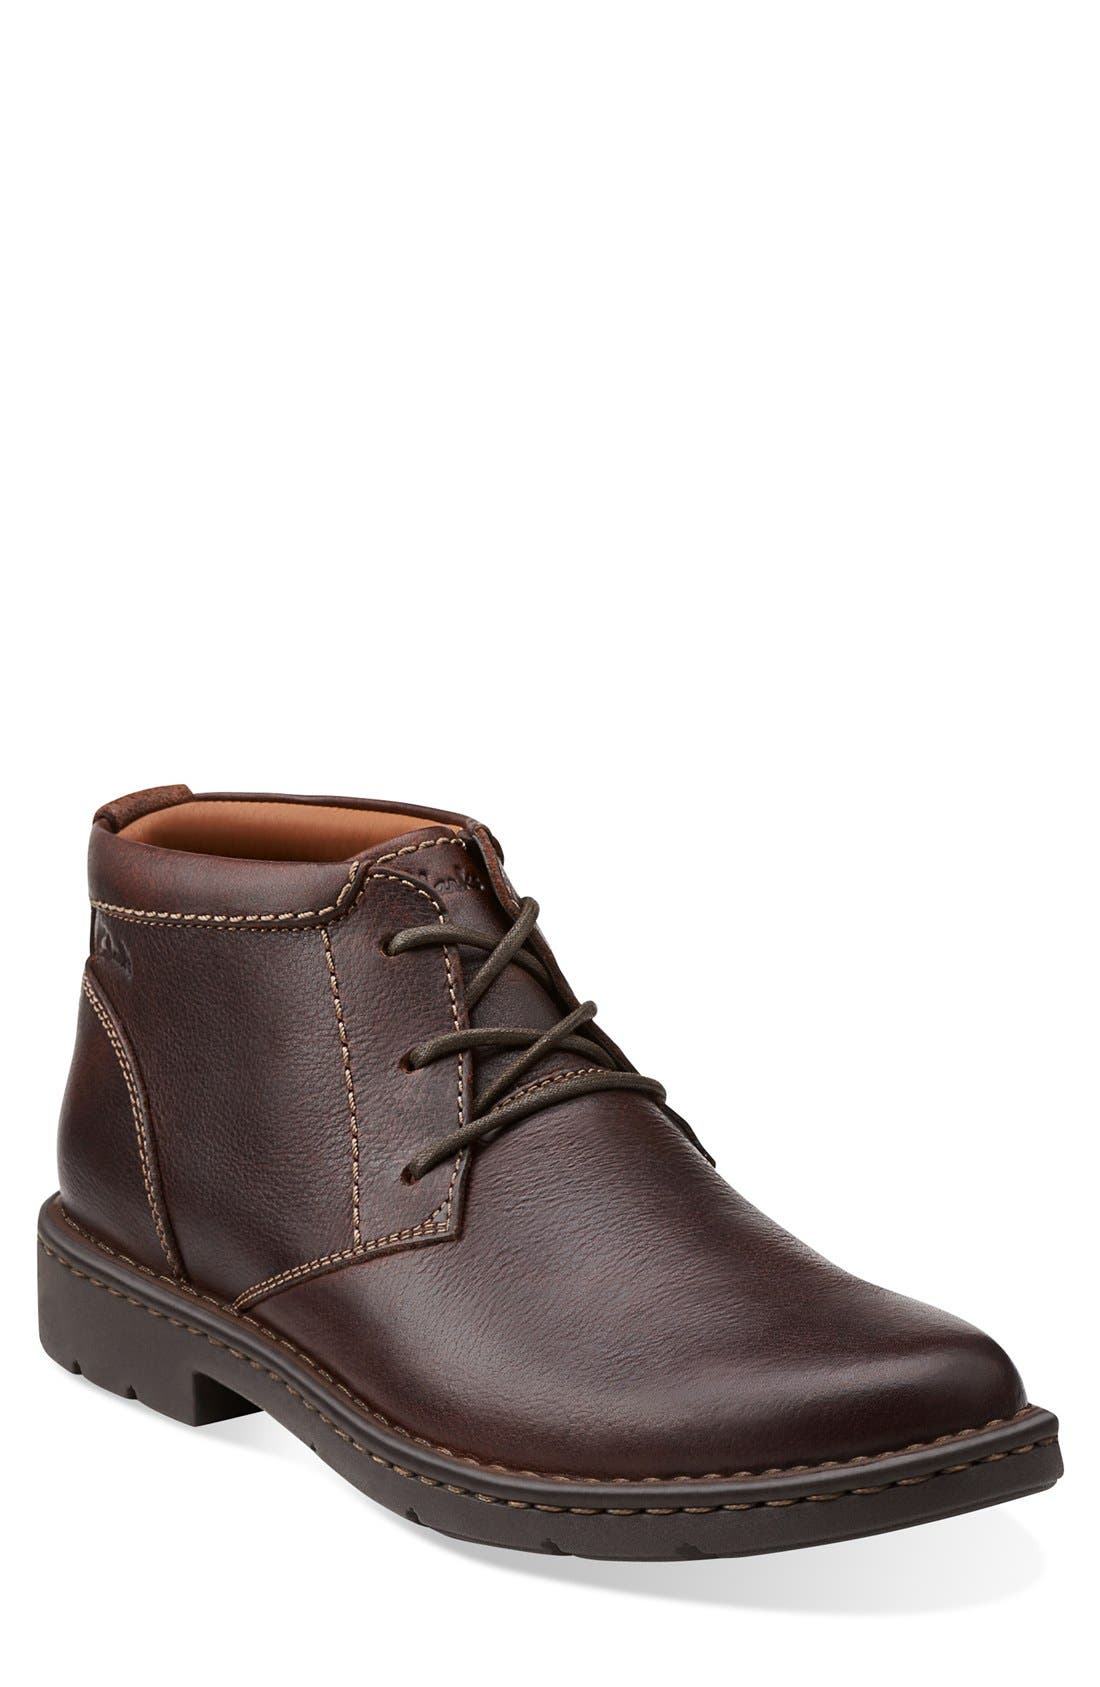 Alternate Image 1 Selected - Clarks® 'Stratton - Limit' Plain Toe Boot (Men)